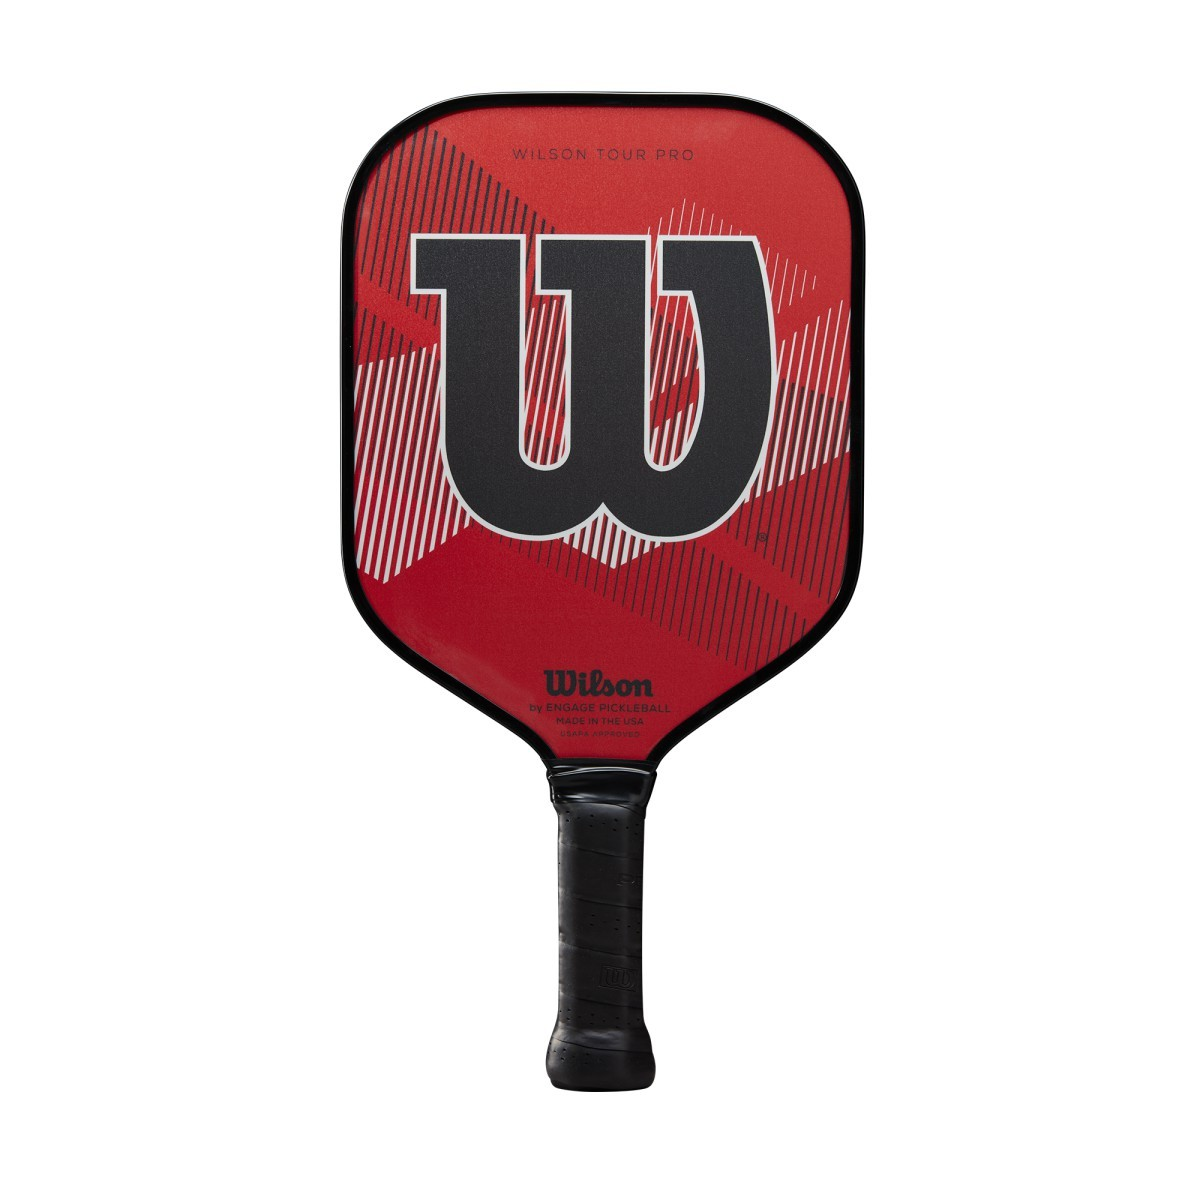 Wilson Tour Pro Pickleball Paddle by Wilson Sporting Goods